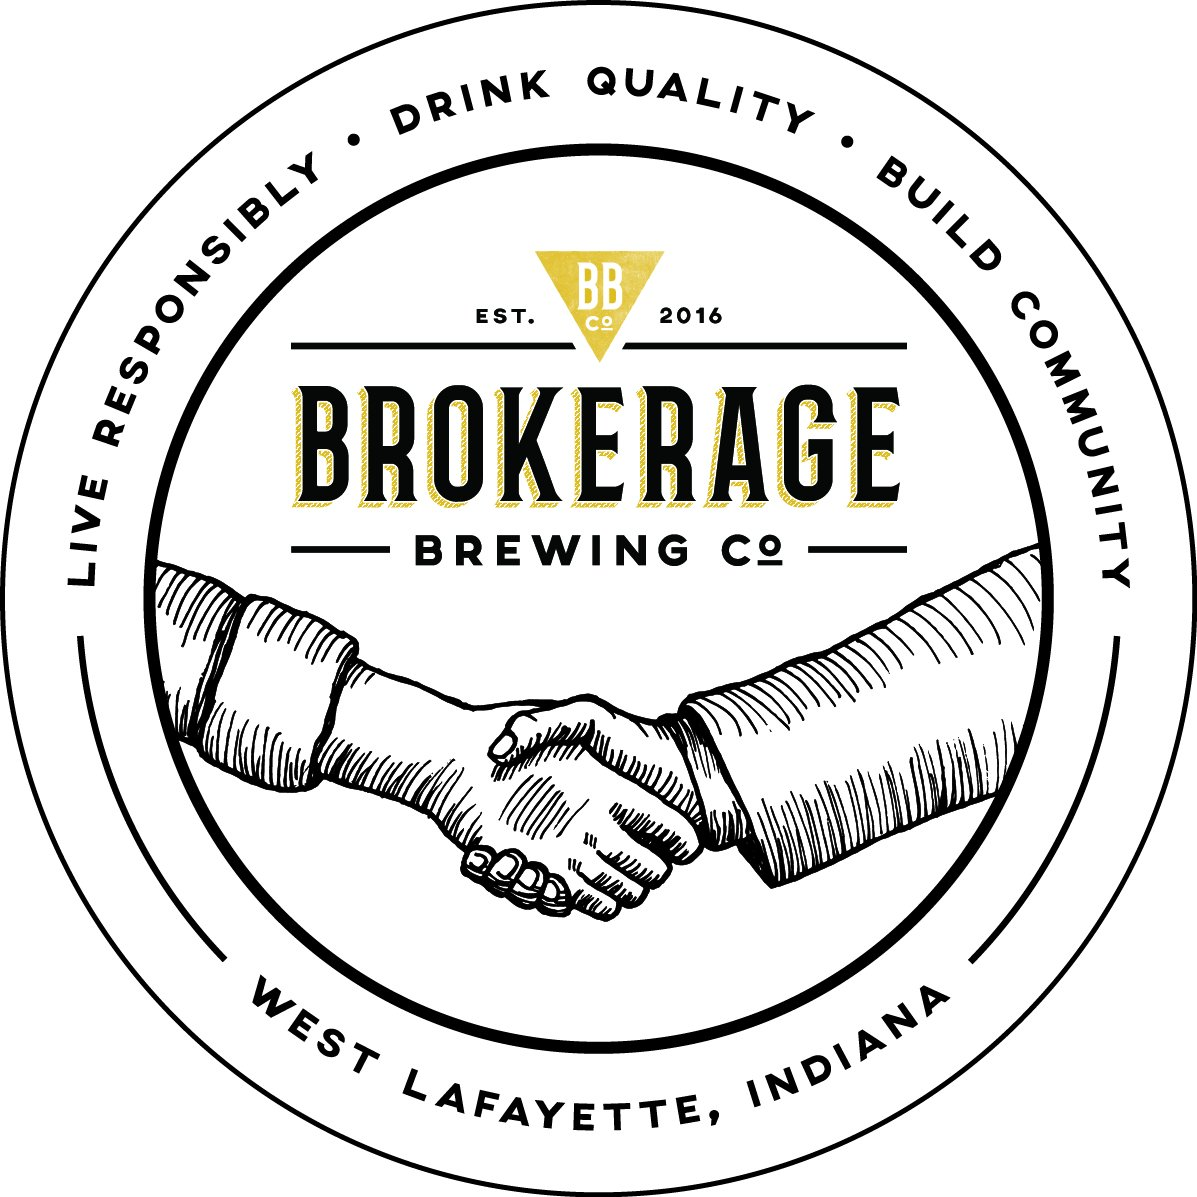 Head Brewer - Brokerage Brewing Company